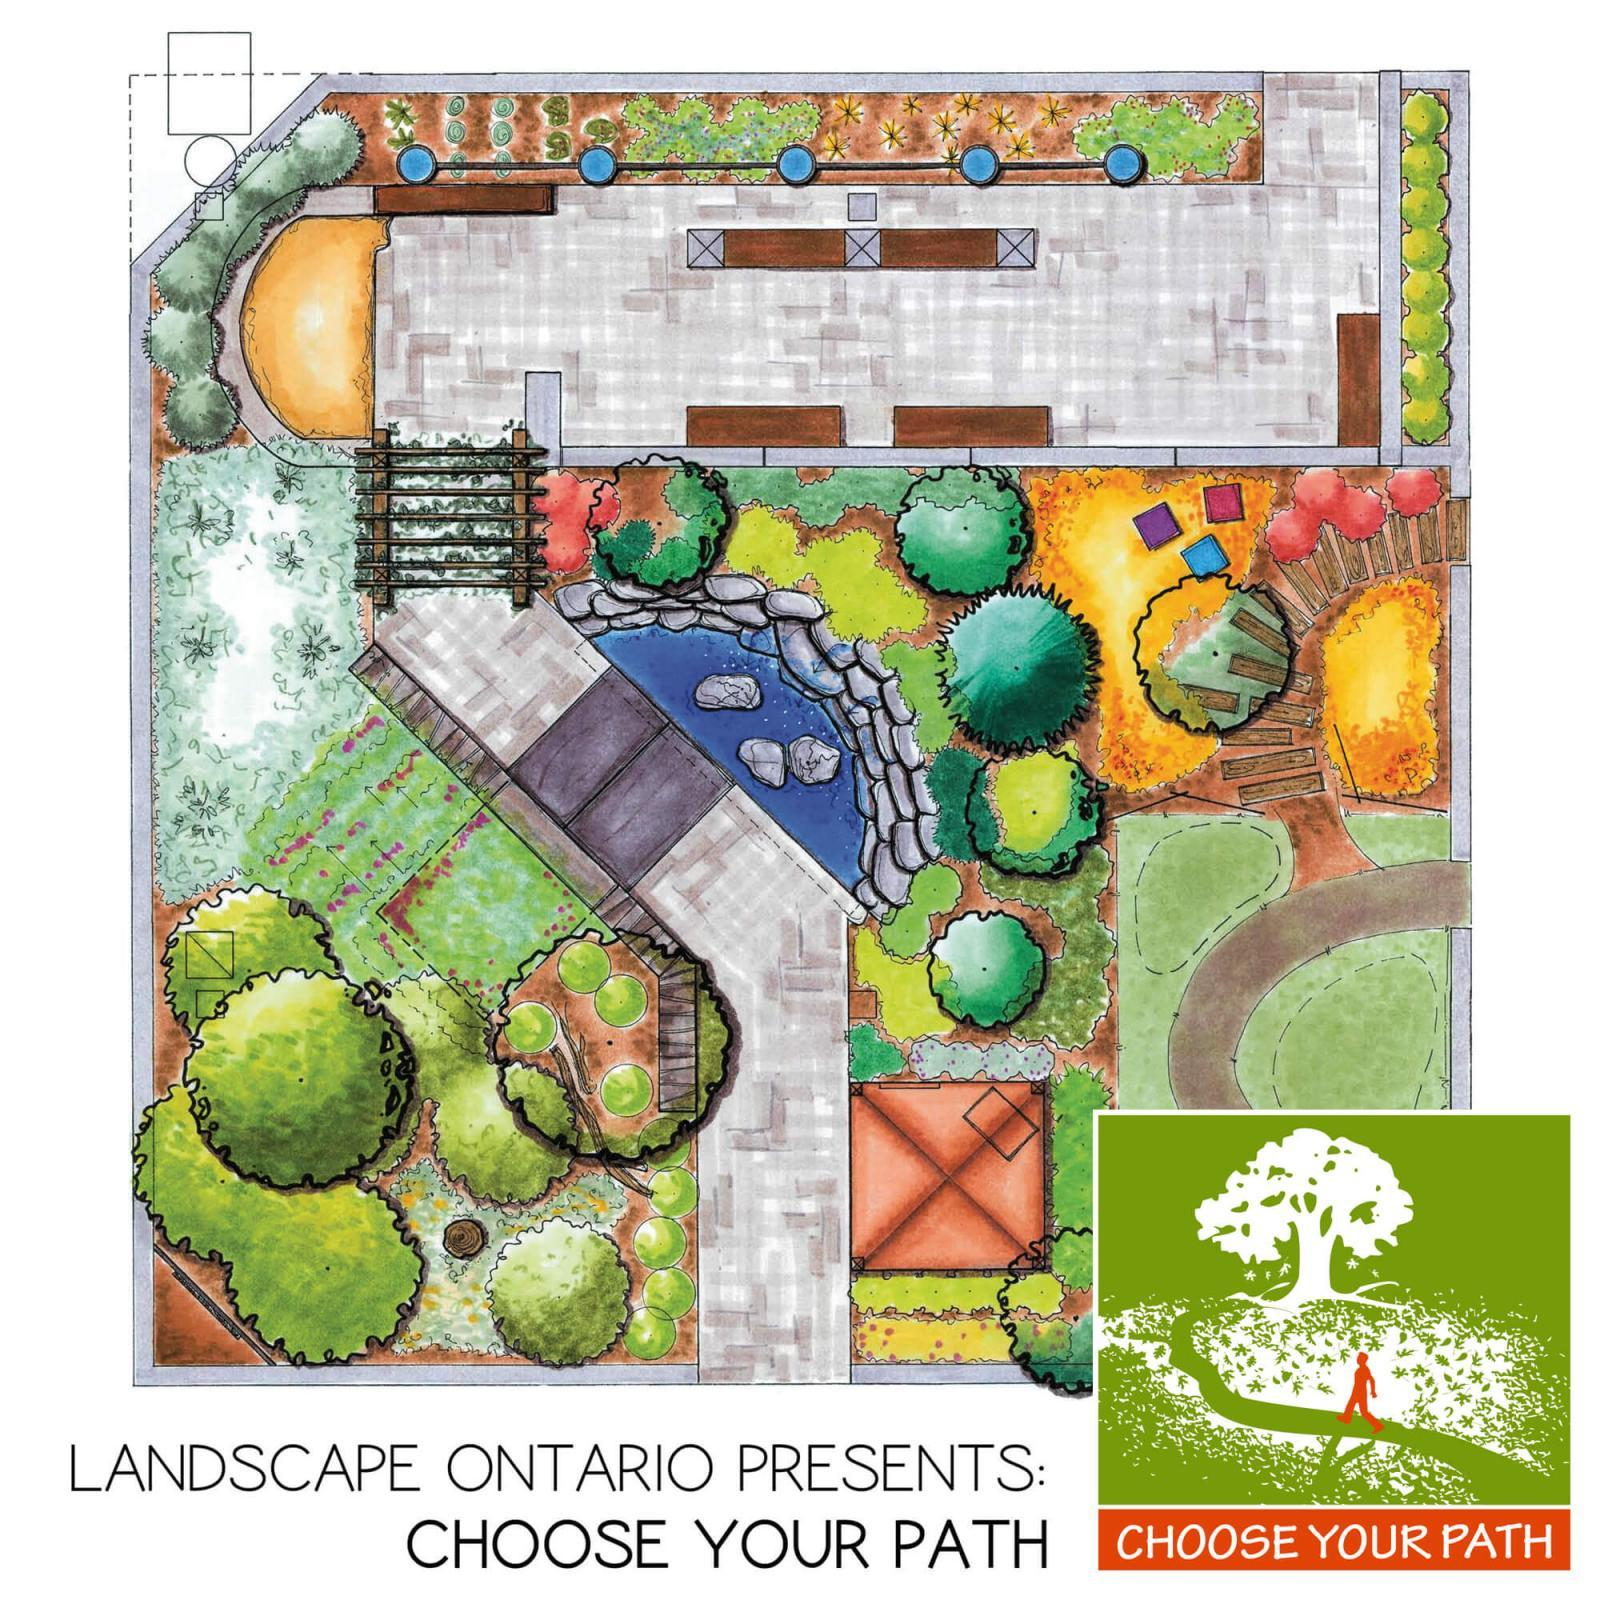 """Choose Your Path"" is the theme of this year's Landscape Ontario feature garden at Canada Blooms."